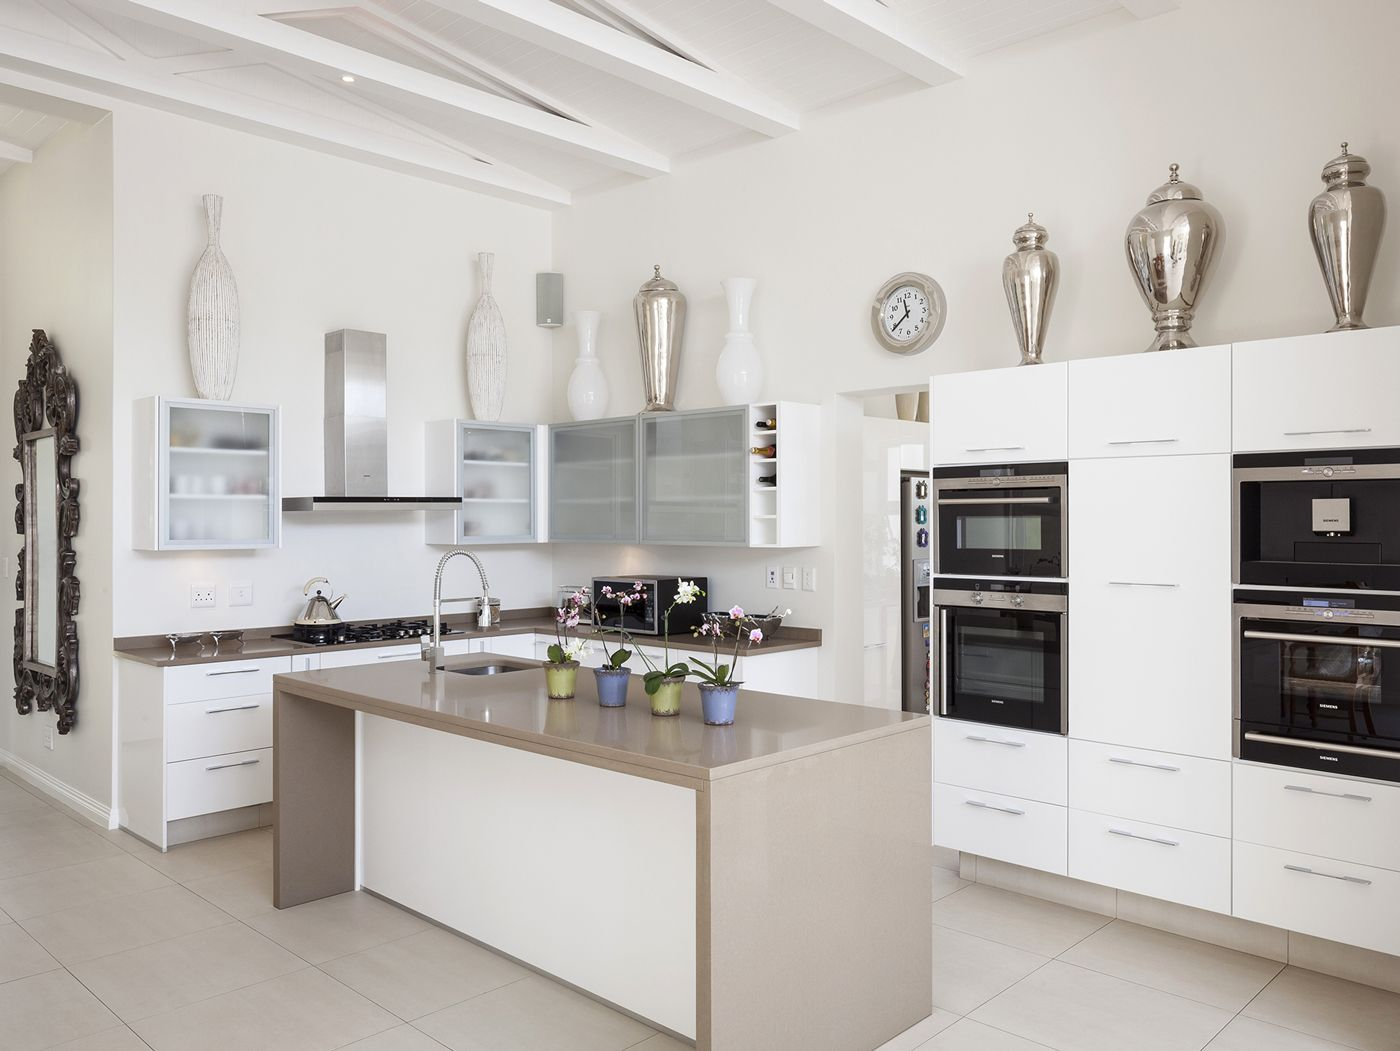 High Gloss White with Mocha Caesarstone tops | Contemporary Kitchens ...